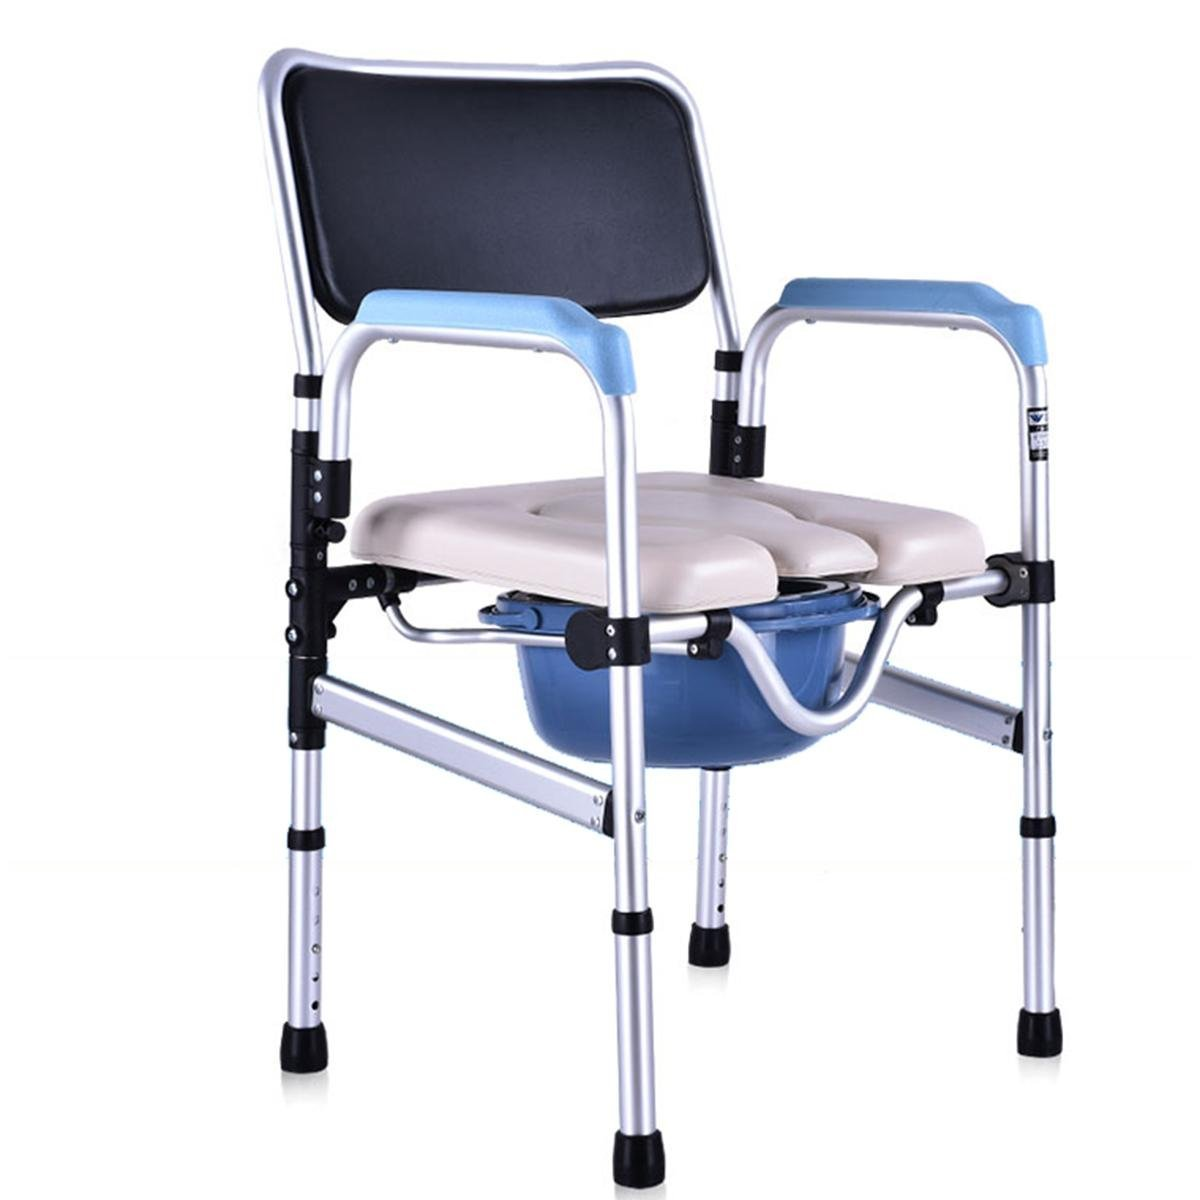 Cheap Toilet Chair For Disabled, find Toilet Chair For Disabled